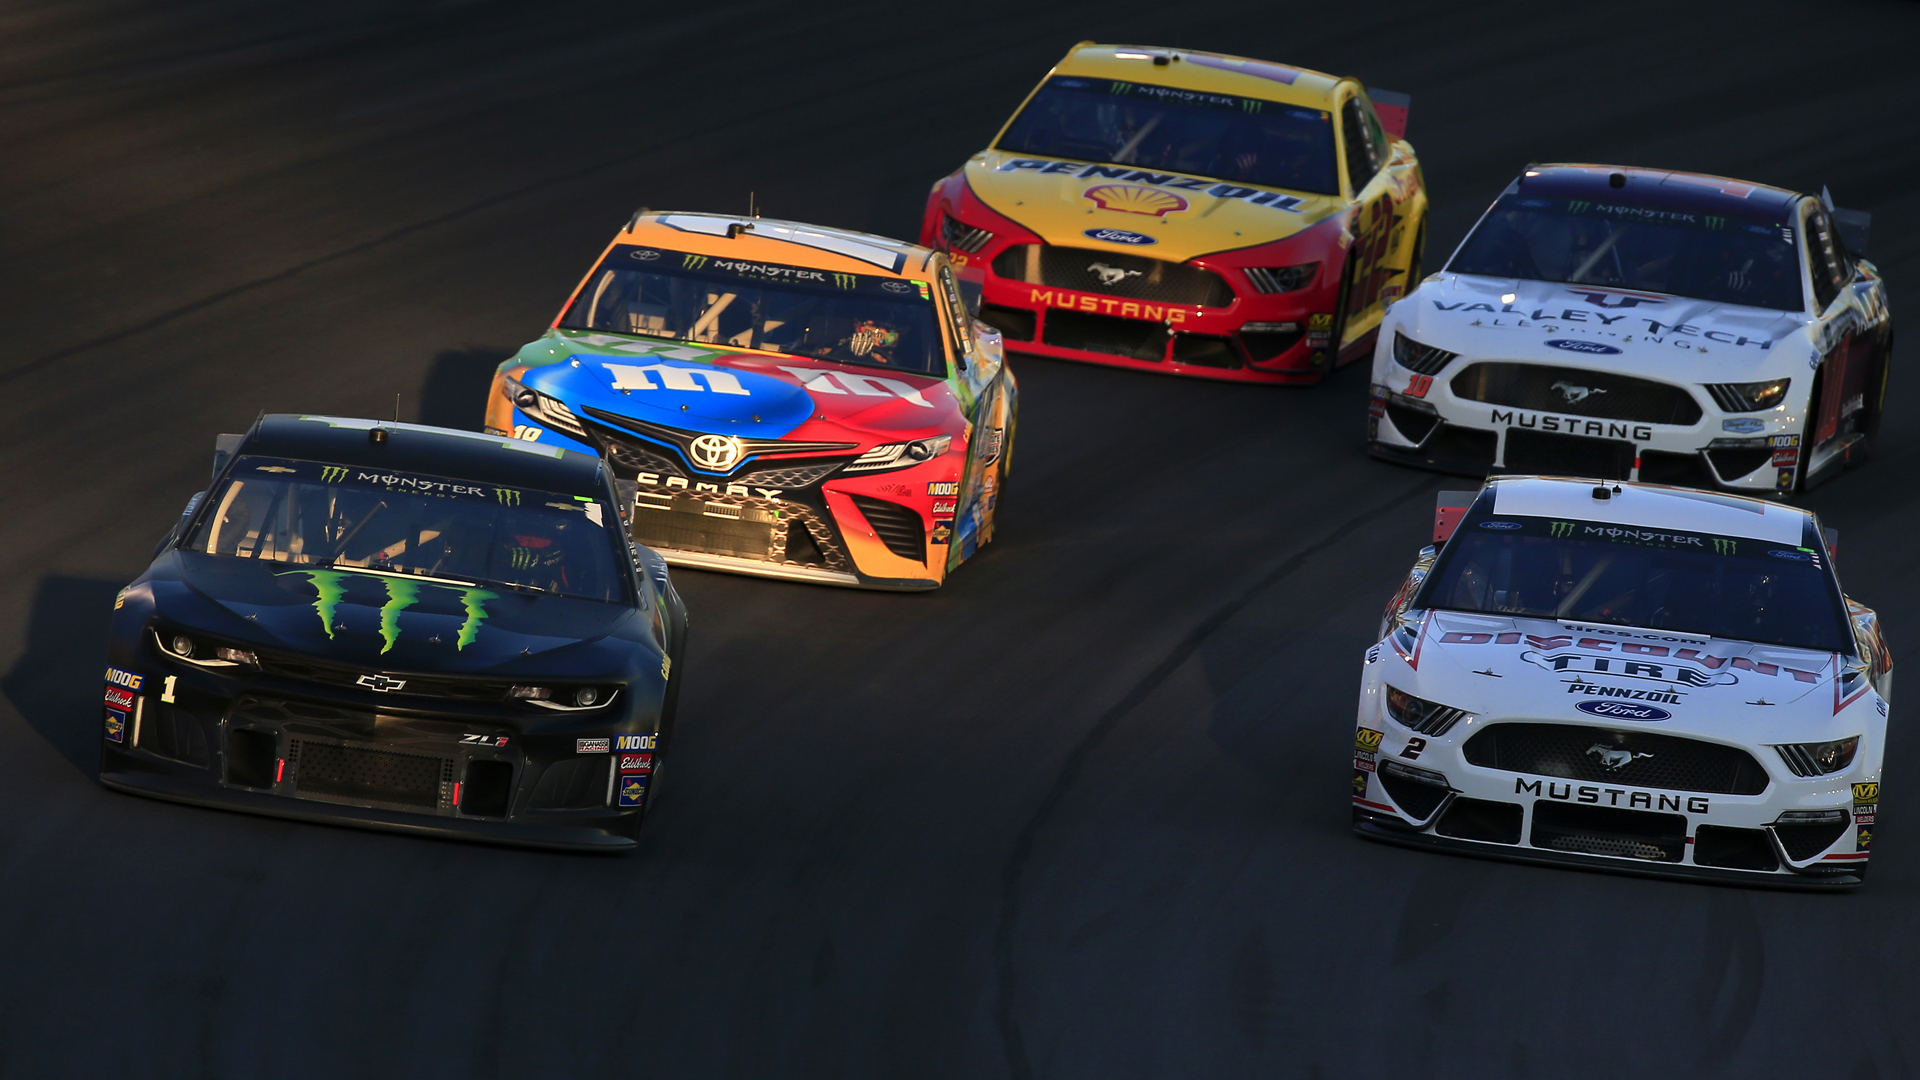 NASCAR standings 2019: Updated points for Cup Series playoffs after the Quaker State 400